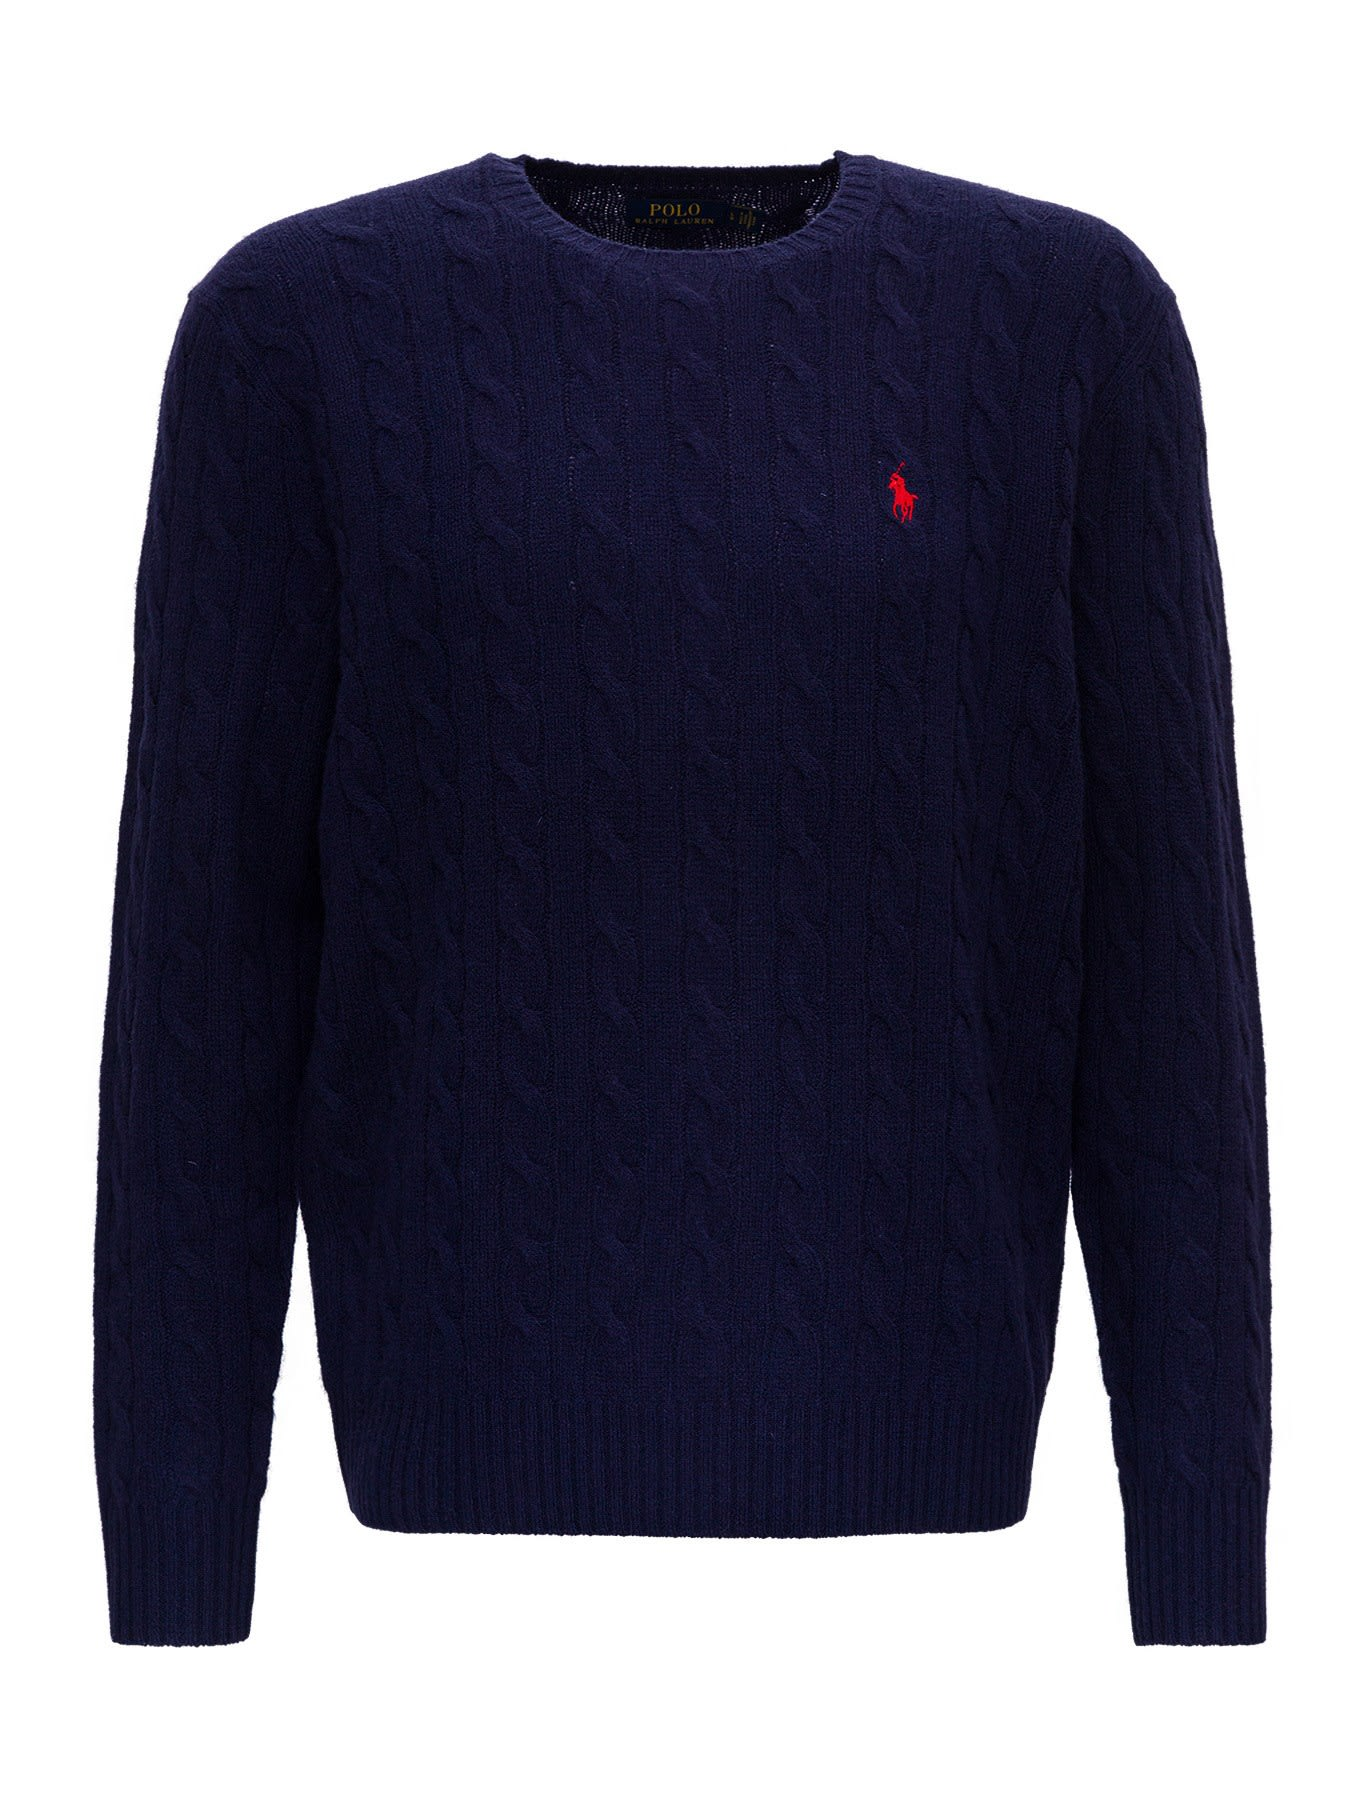 Sweater In Cable Stitched Wool Polo Ralph Lauren